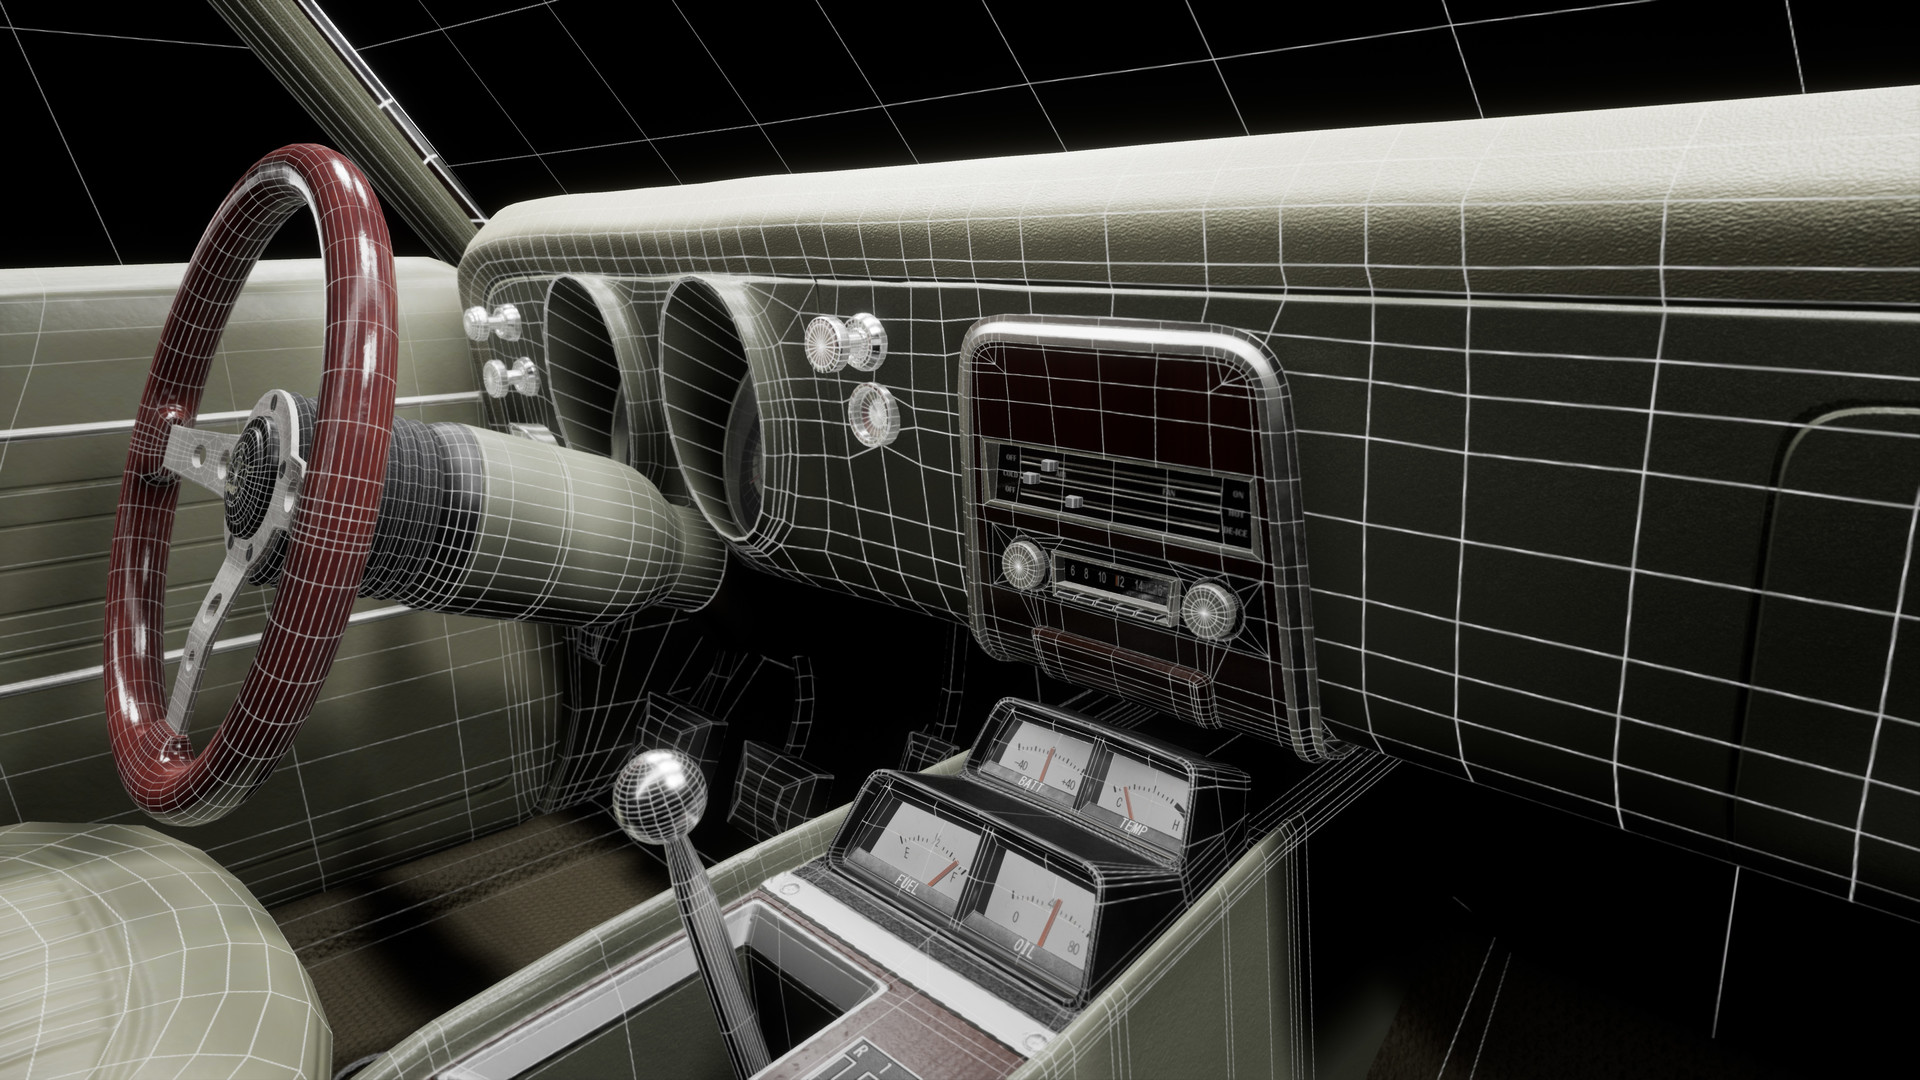 Steven m turner interior wireframe 2